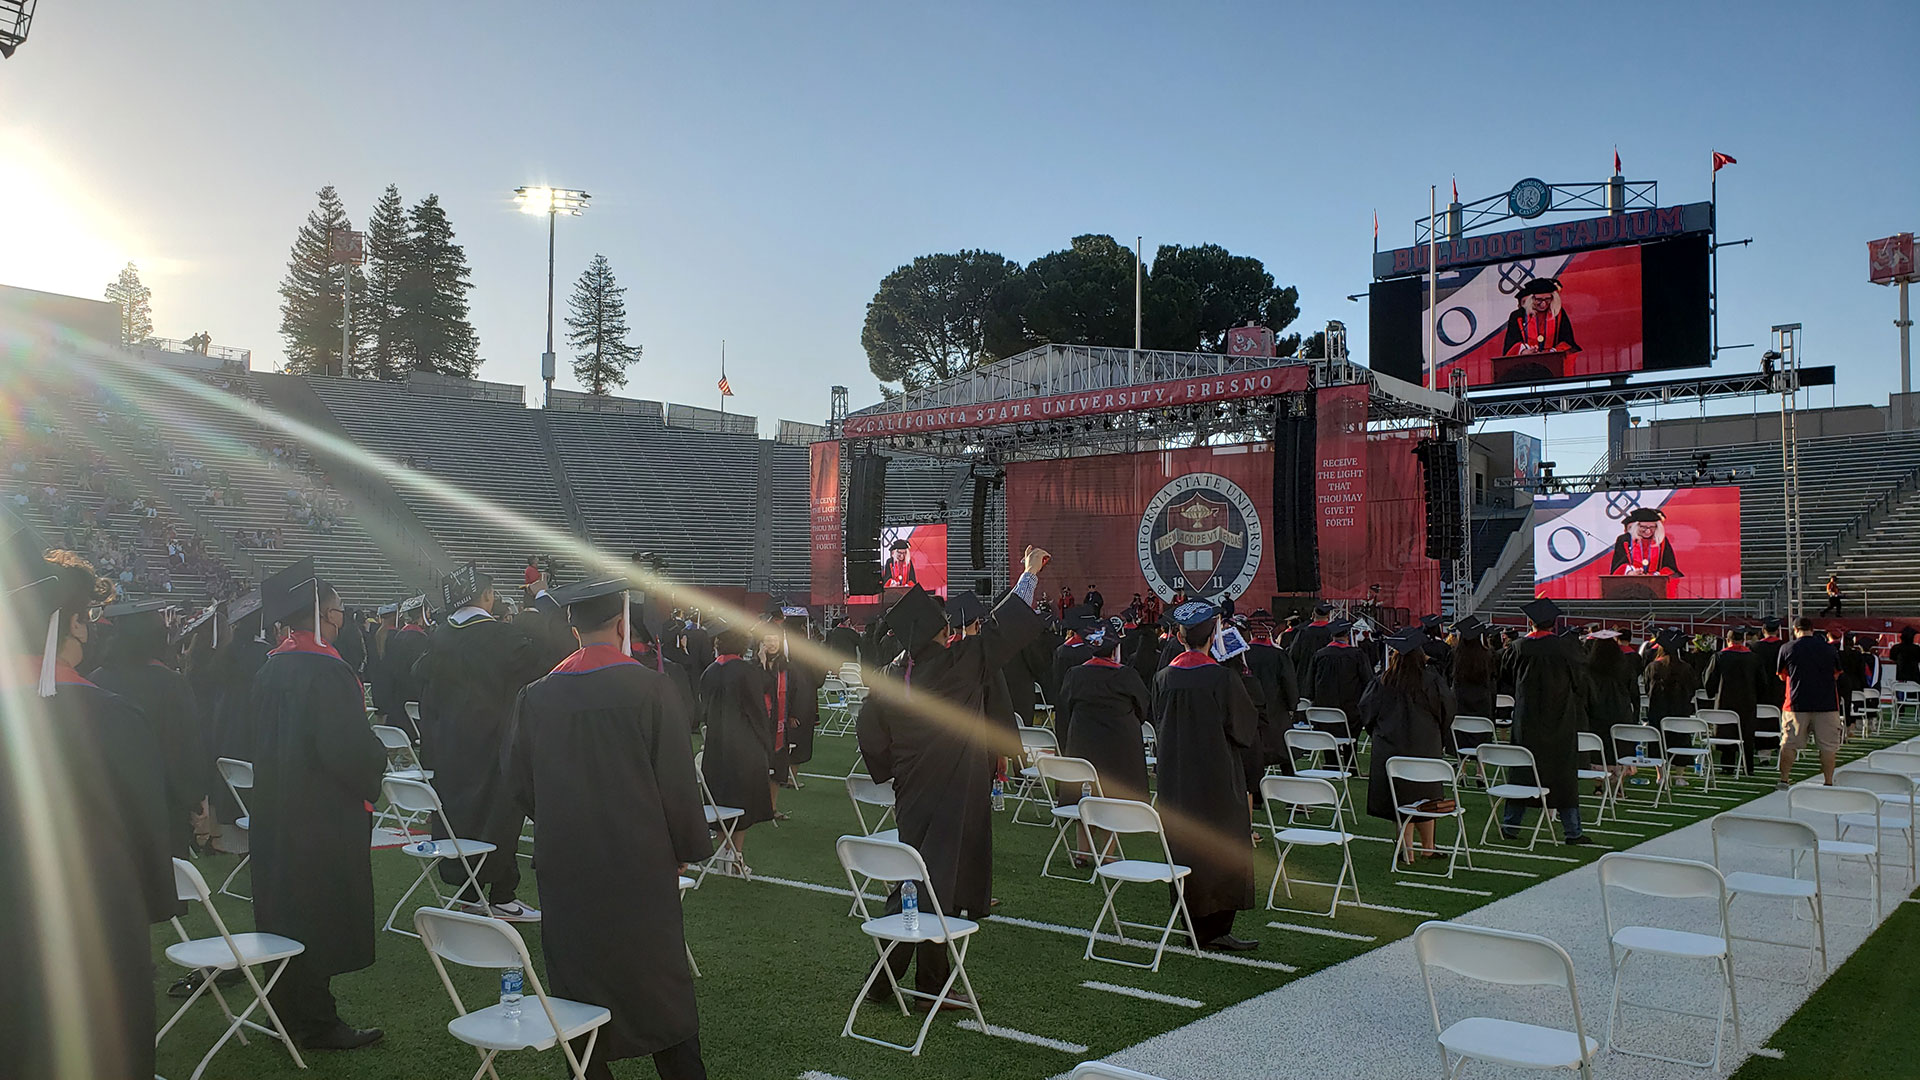 Sun setting during commencement.